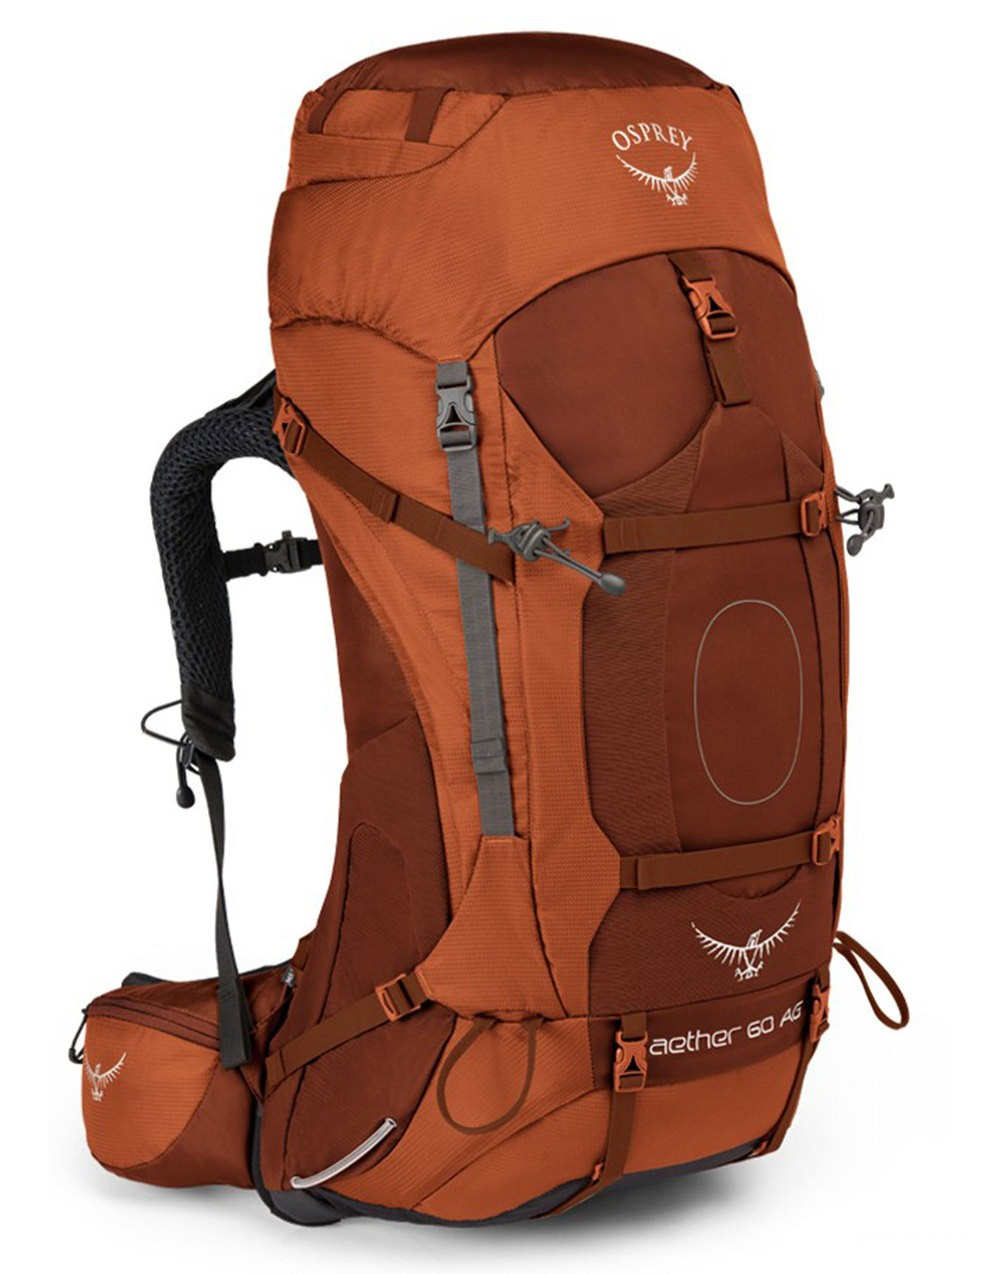 Osprey Sac à dos de trekking - Aether AG 60 Outback Orange - Marque